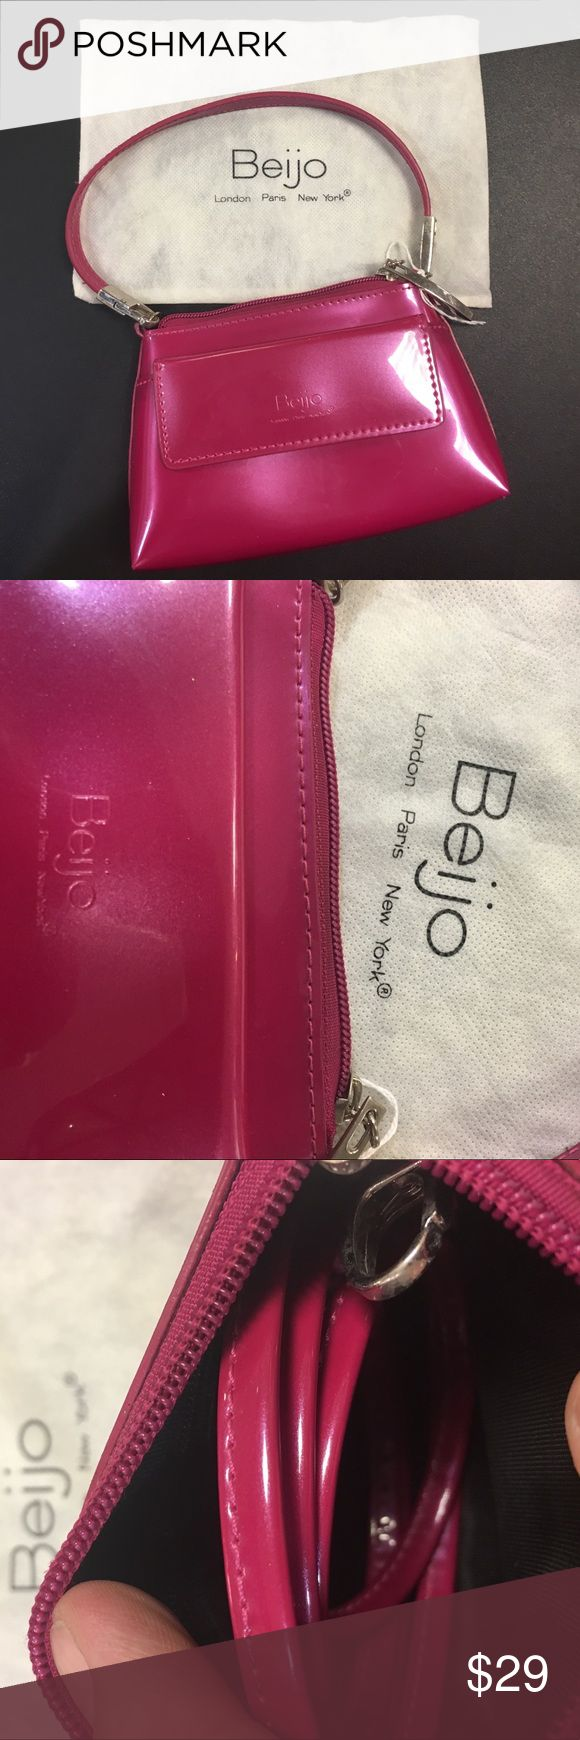 BEIJO CROSSBODY BRAND NEW AND NEVER WORN!!! Comes with original dust bag to keep your bag in Mint condition 👌. Also come with shoulder strap. beijo Bags